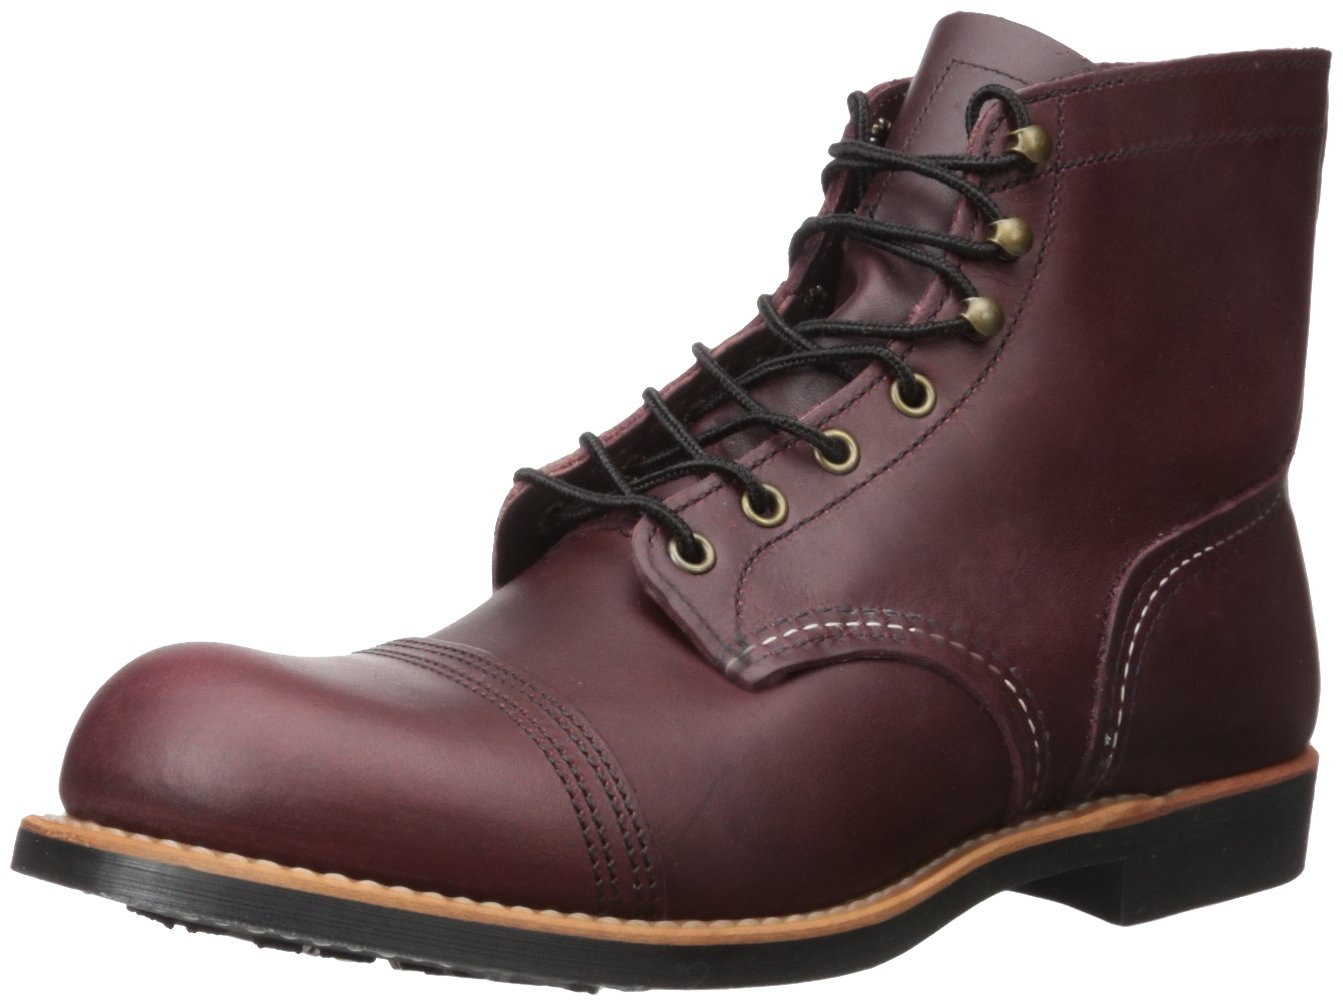 Red Wing Heritage Iron Ranger 6-Inch Boot, Oxblood Mesa, 8.5 D(M) US by Red Wing (Image #1)